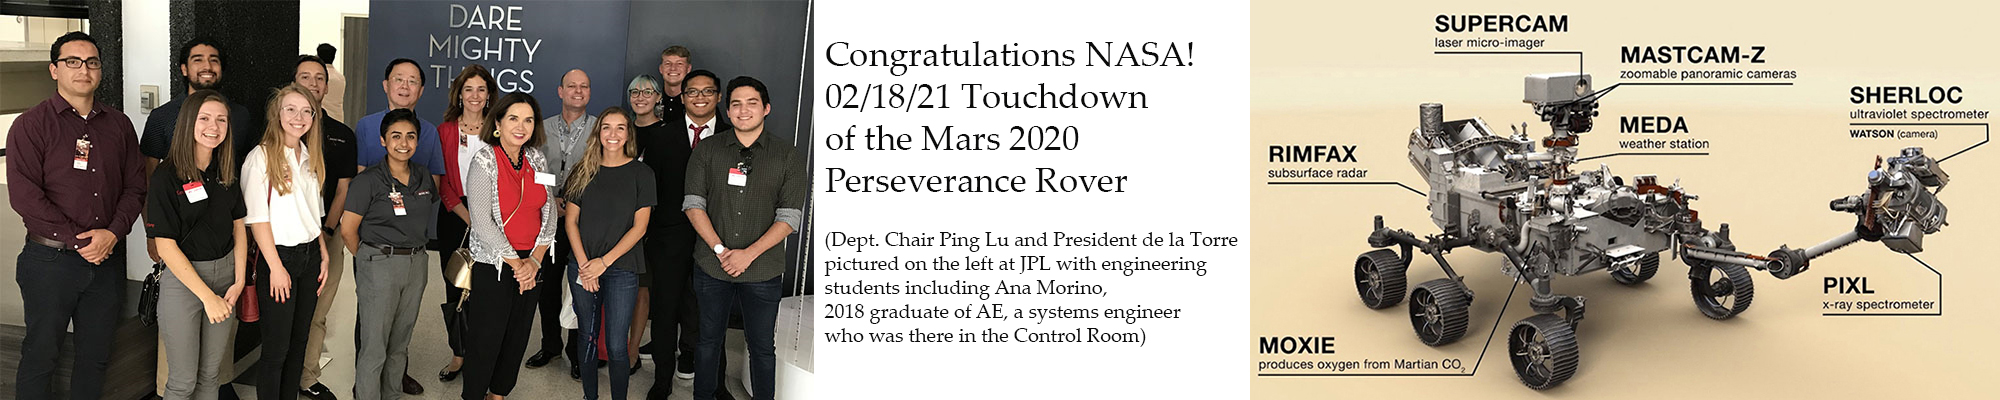 Congratulations to NASA on the 2/18/21 Touchdown of the Mars 2020 Perseverance Rover. Picture shows department chair Ping Lu, President de la Torre, and recent 2018 AE graduate Ana Morino who was in the control room when Perseverance landed.